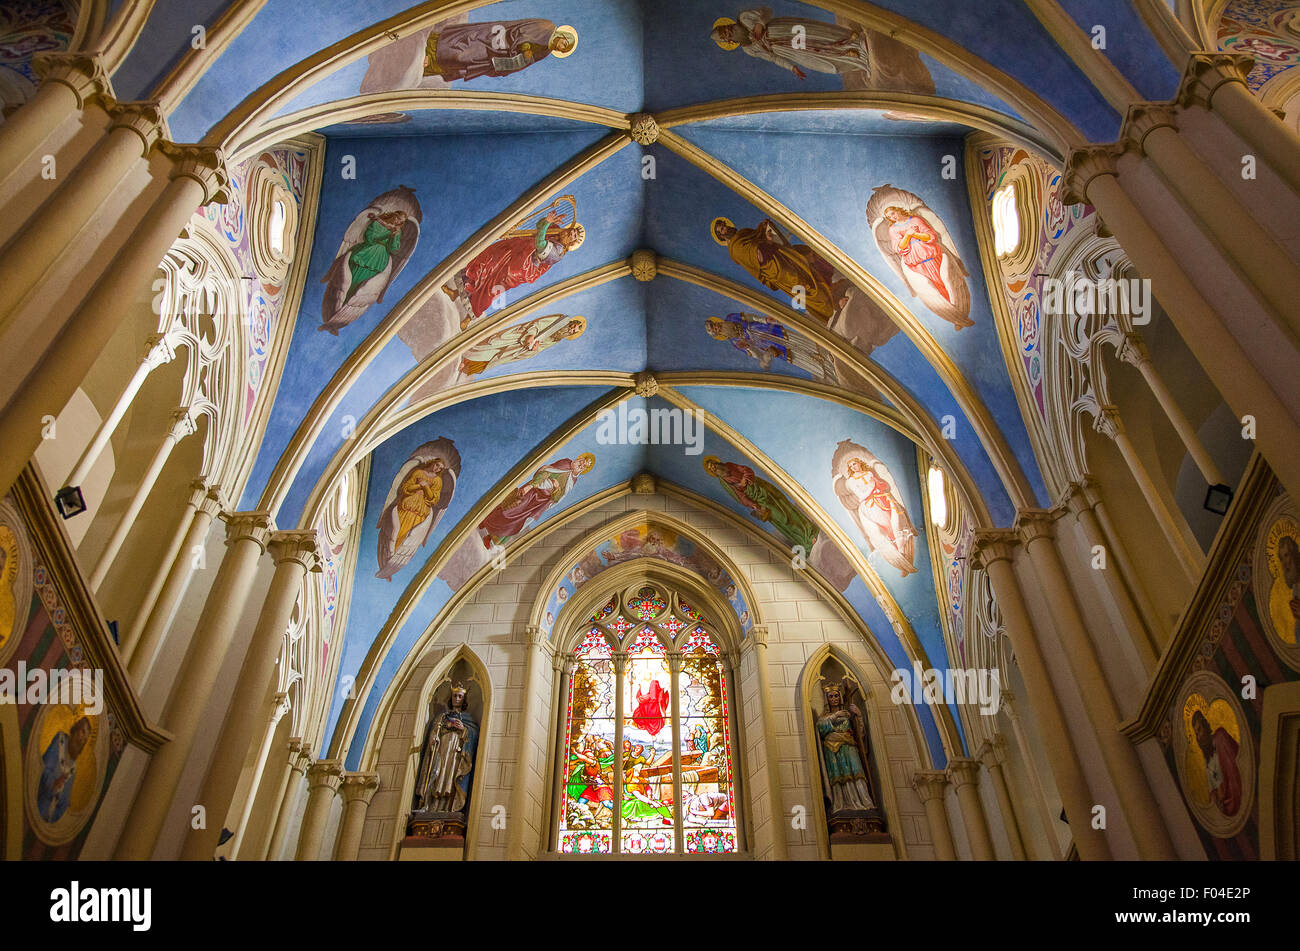 Israel, Jerusalem, the Cathedral of Latin Patriarchate - Stock Image